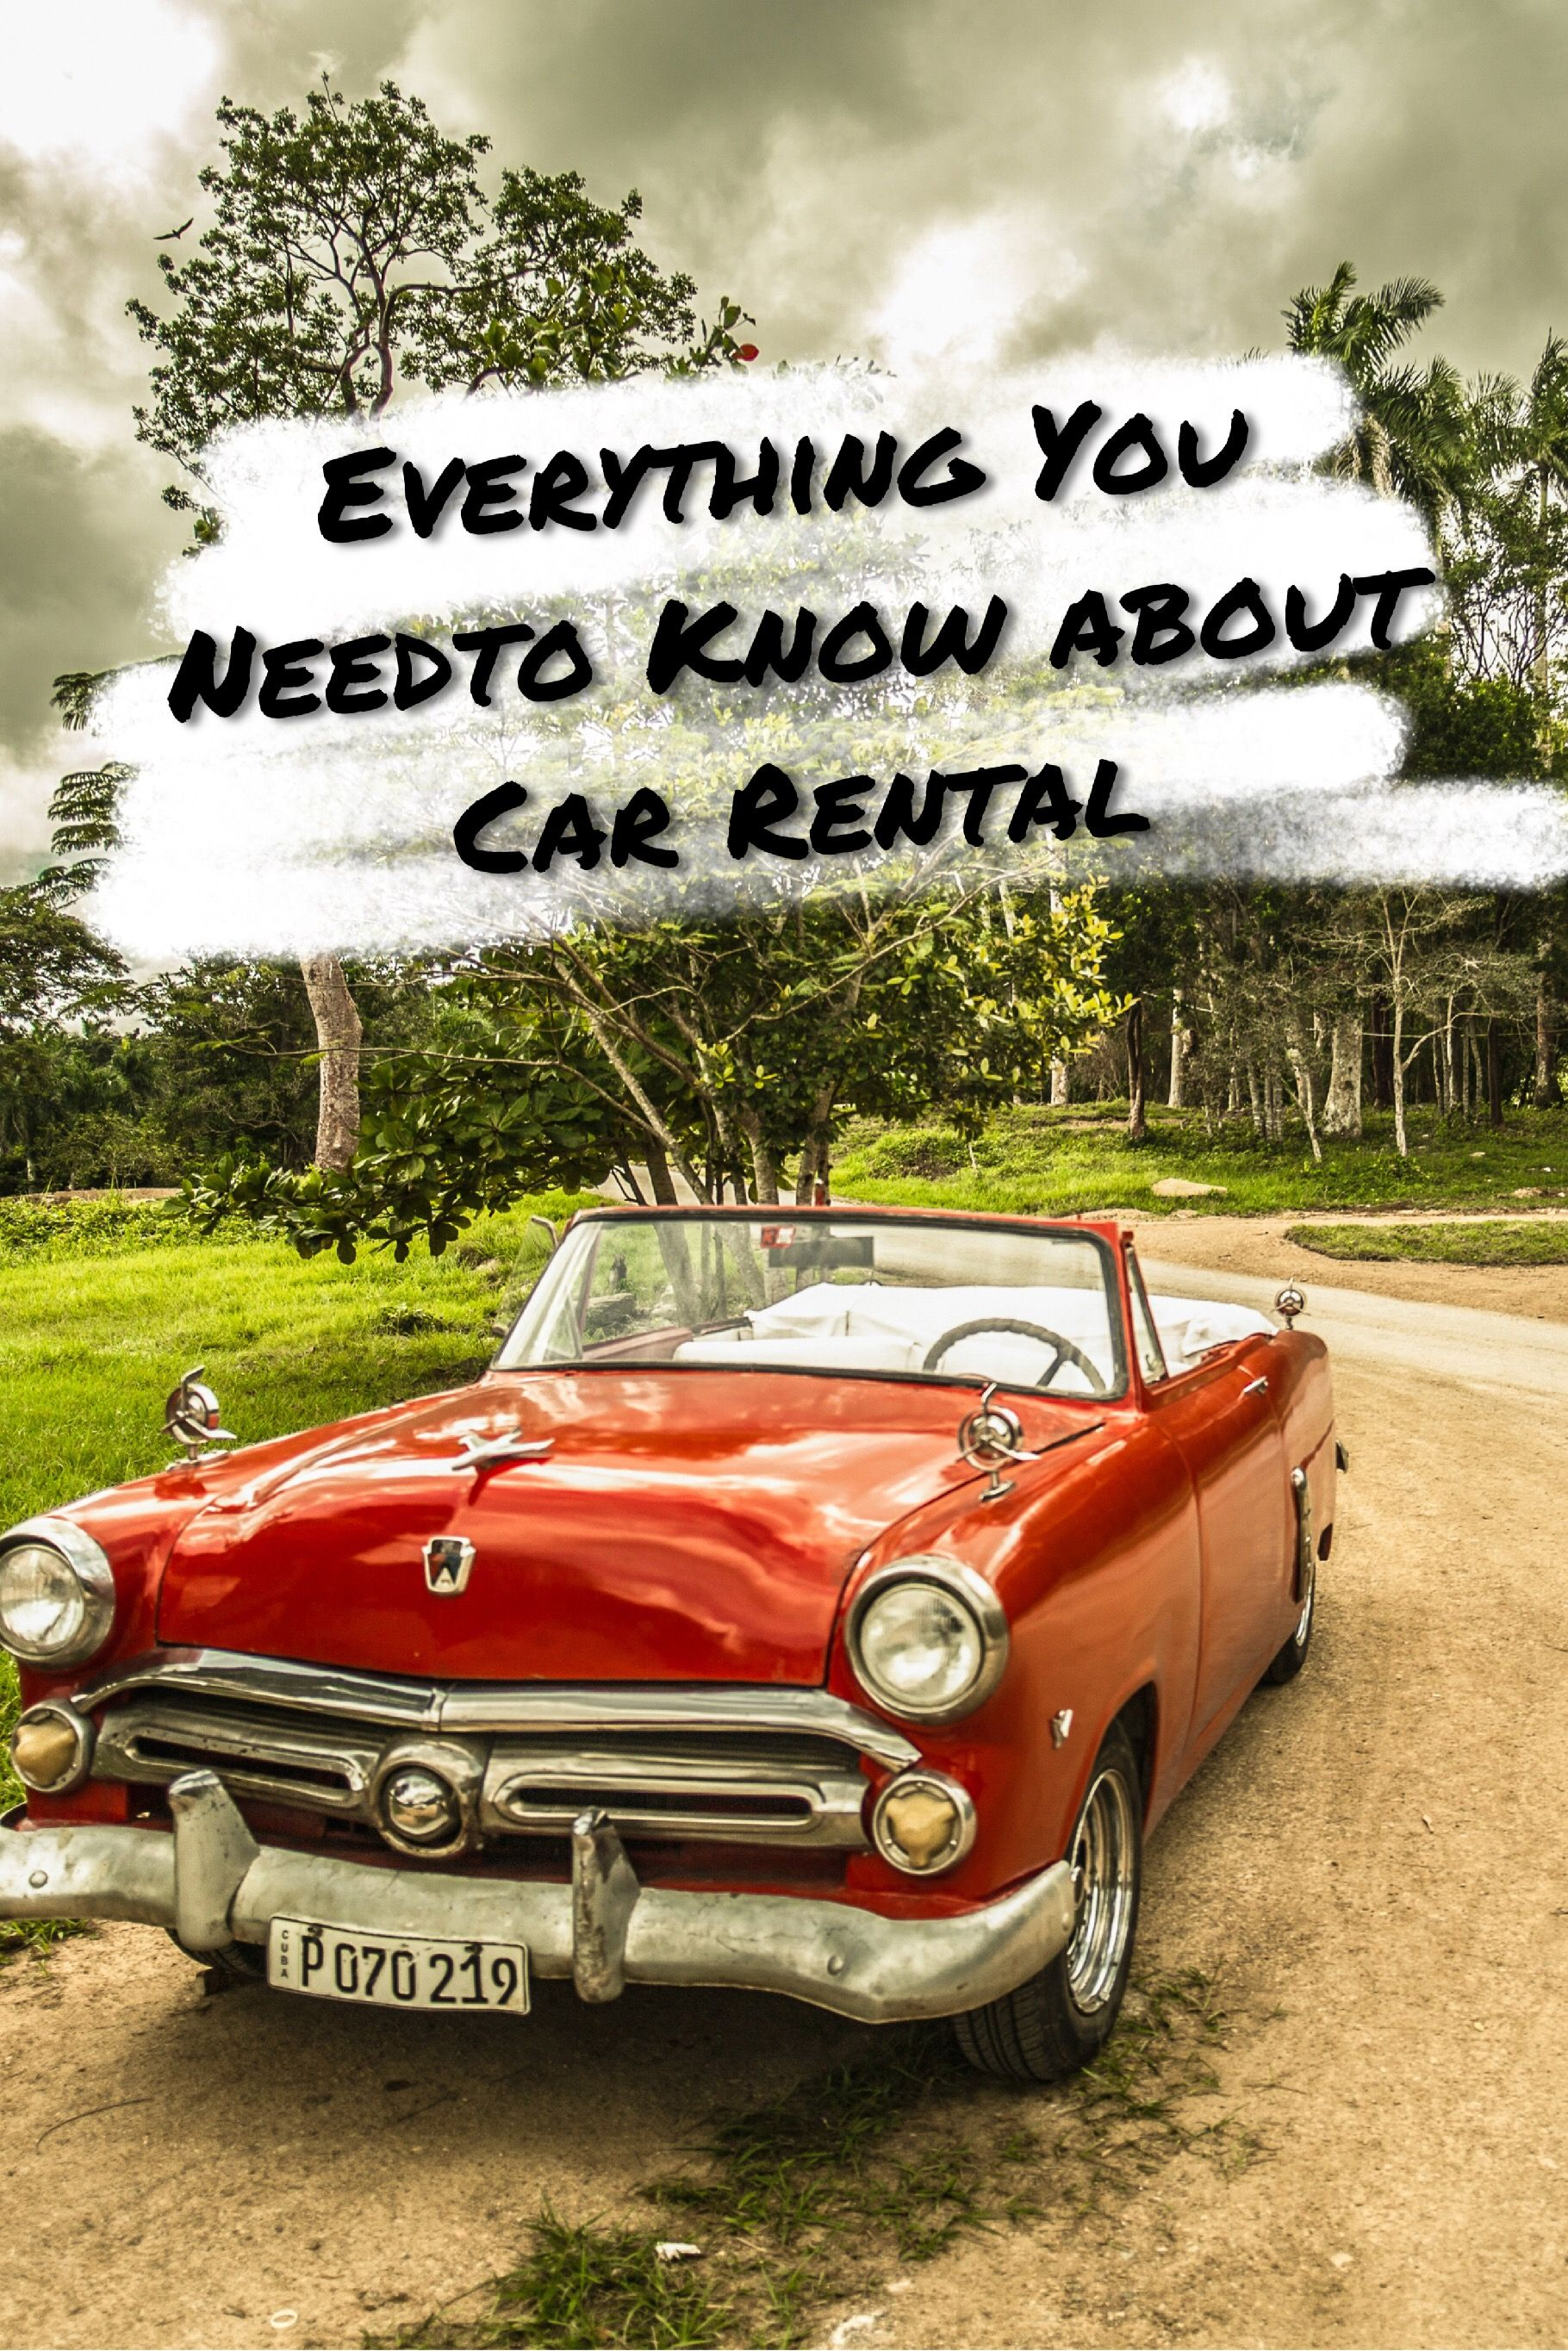 Everything You Need To Know About Car Rental Car Rental Rental